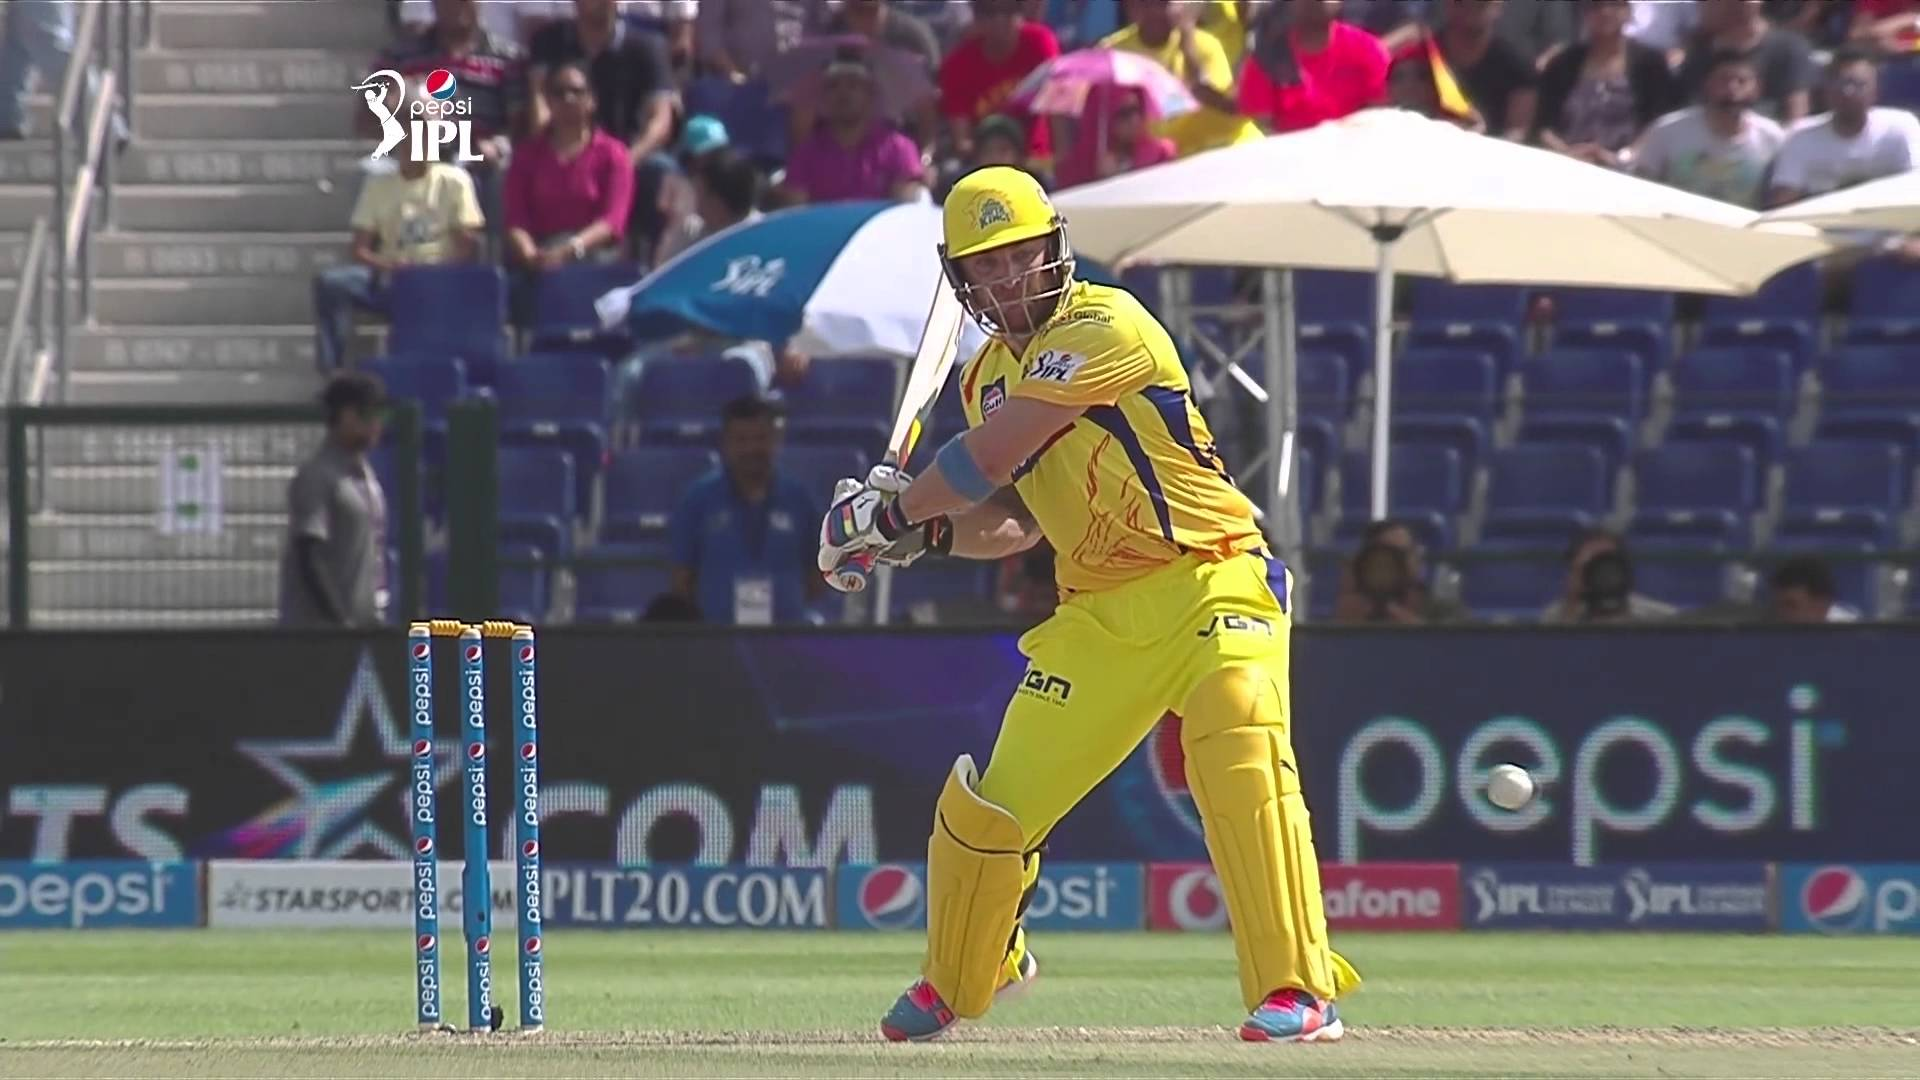 Watch CSK Brendon Mccullum blasting 100 Runs 1st century Against SRH